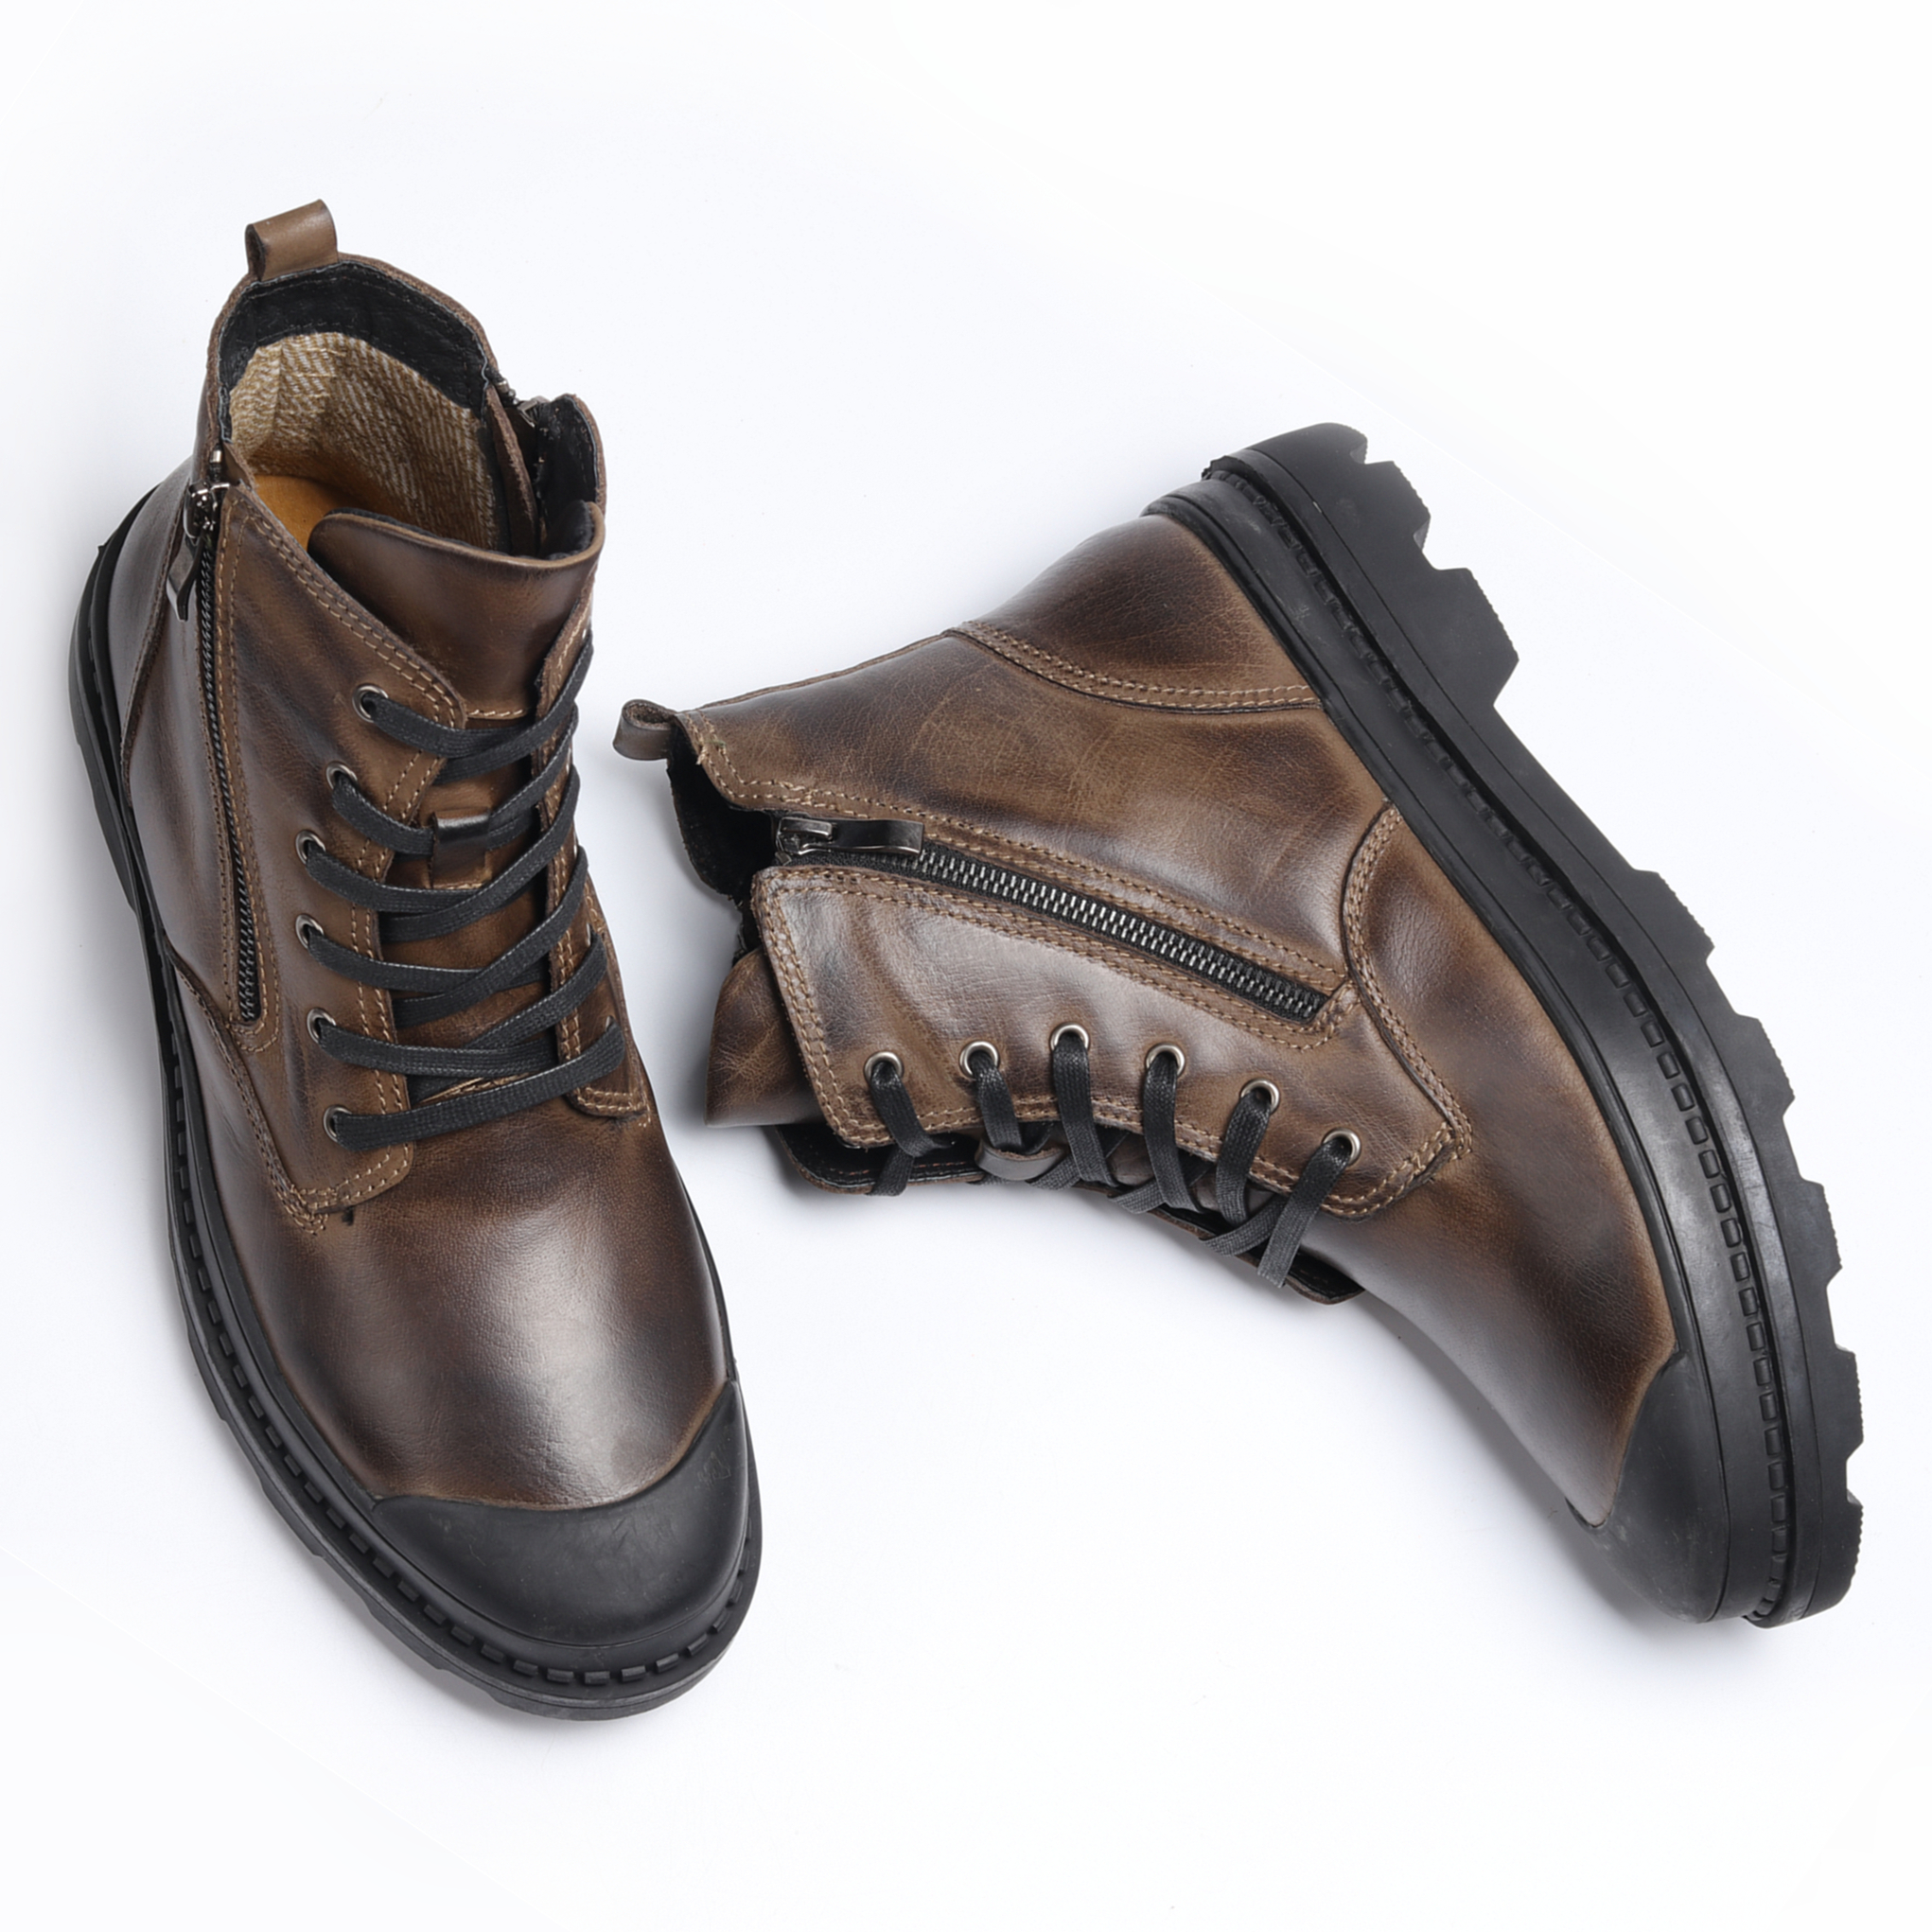 Natural Cow Leather Men Winter Boots Handmade Retro Men Boots Genuine Leather Men Winter Shoes #CX9550 1